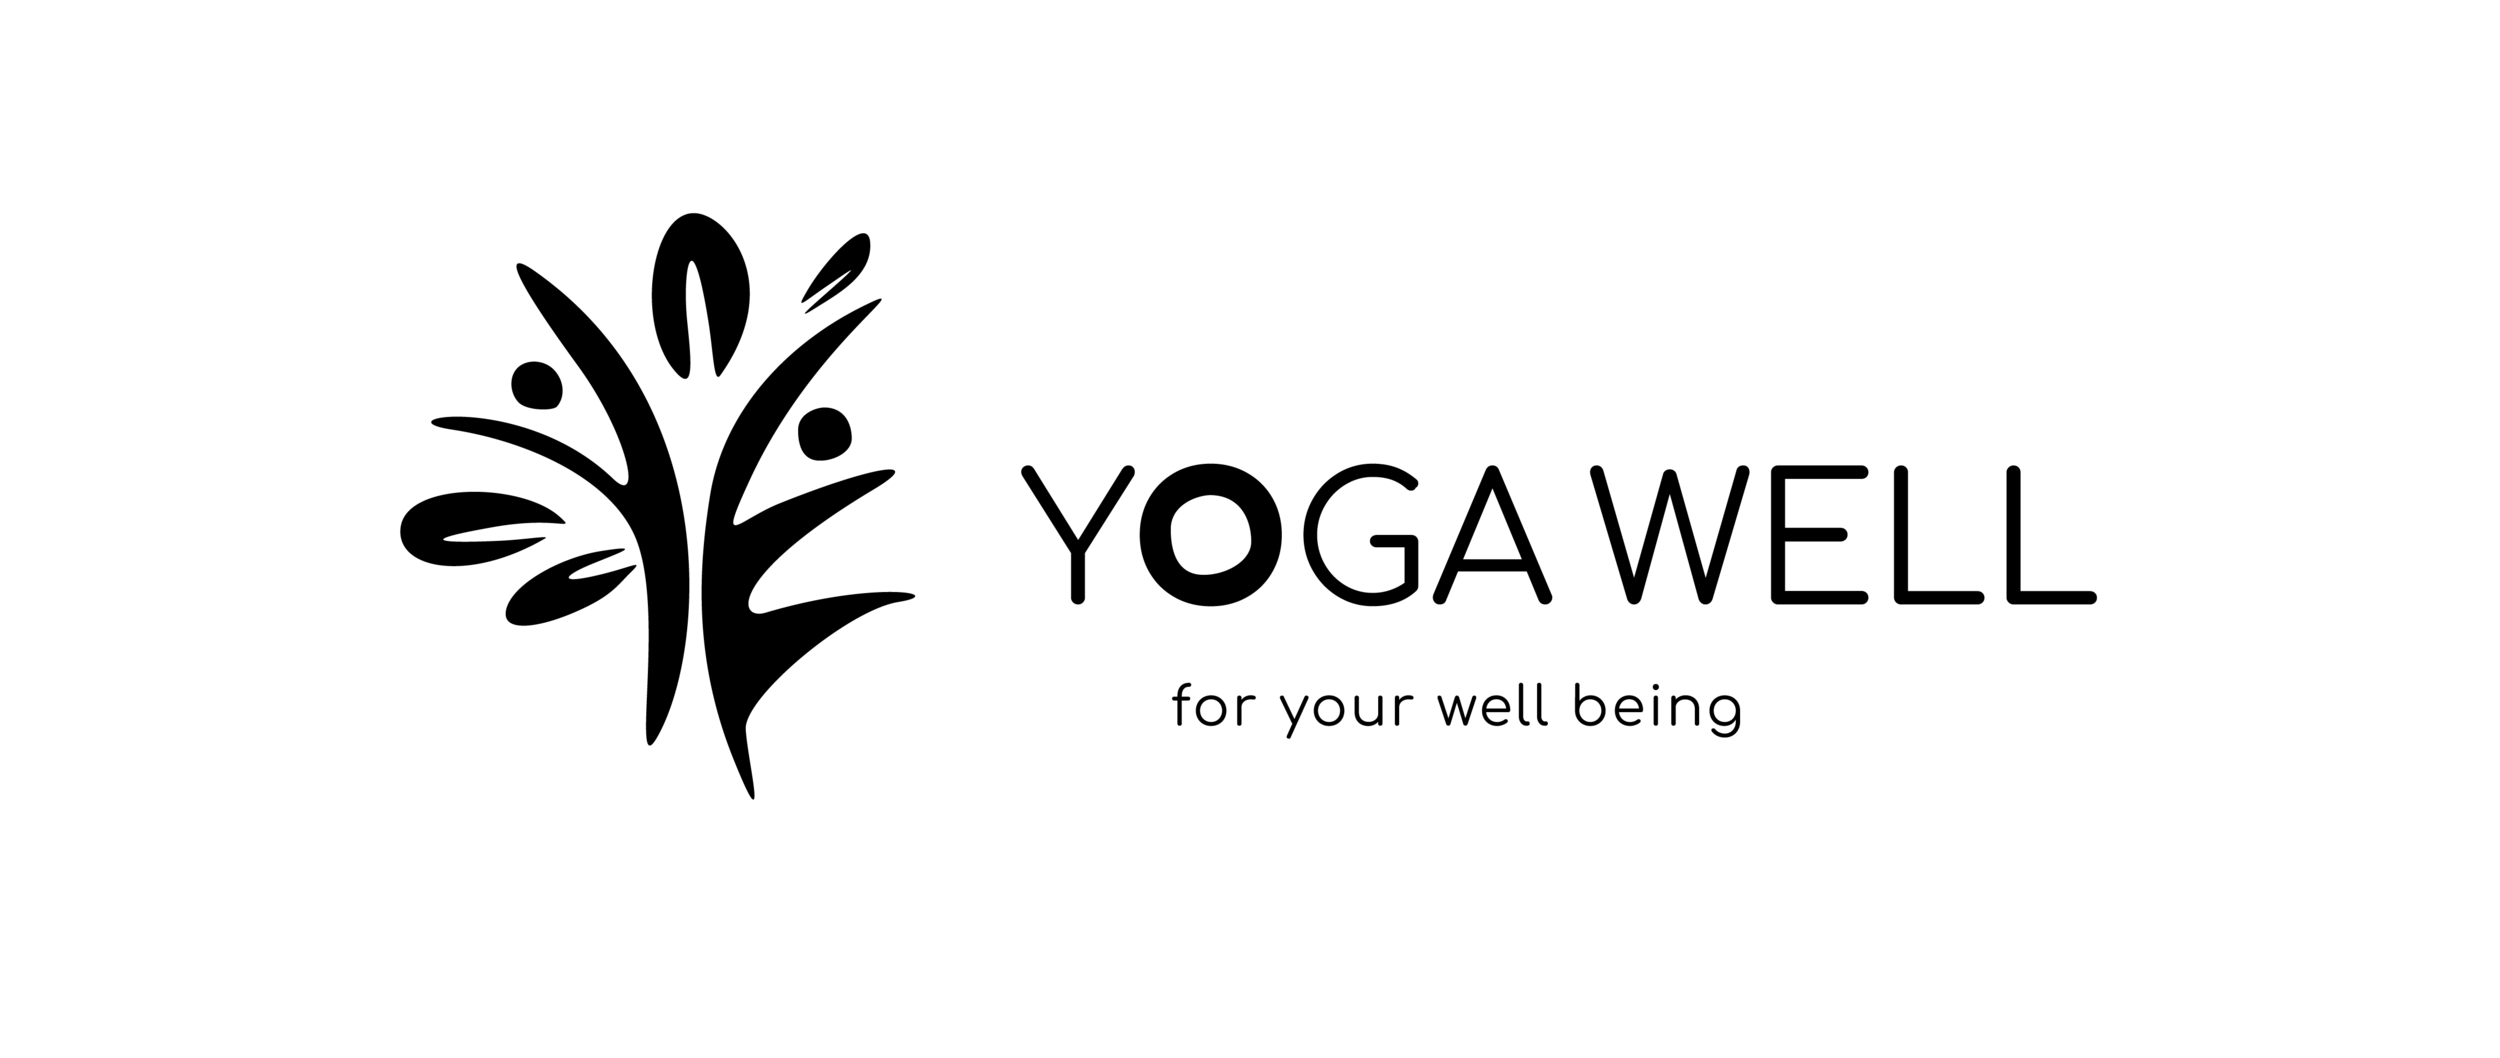 Yoga Well logo revamp